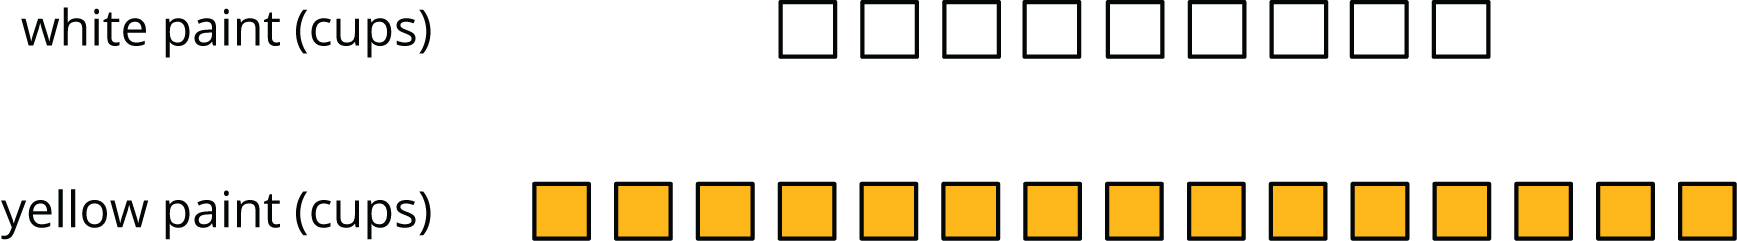 "A discrete diagram for two quantities labeled ""white paint, in cups"" and ""yellow paint, in cups"". The data are as follows: white paint, 9 squares. yellow paint, 15 squares."